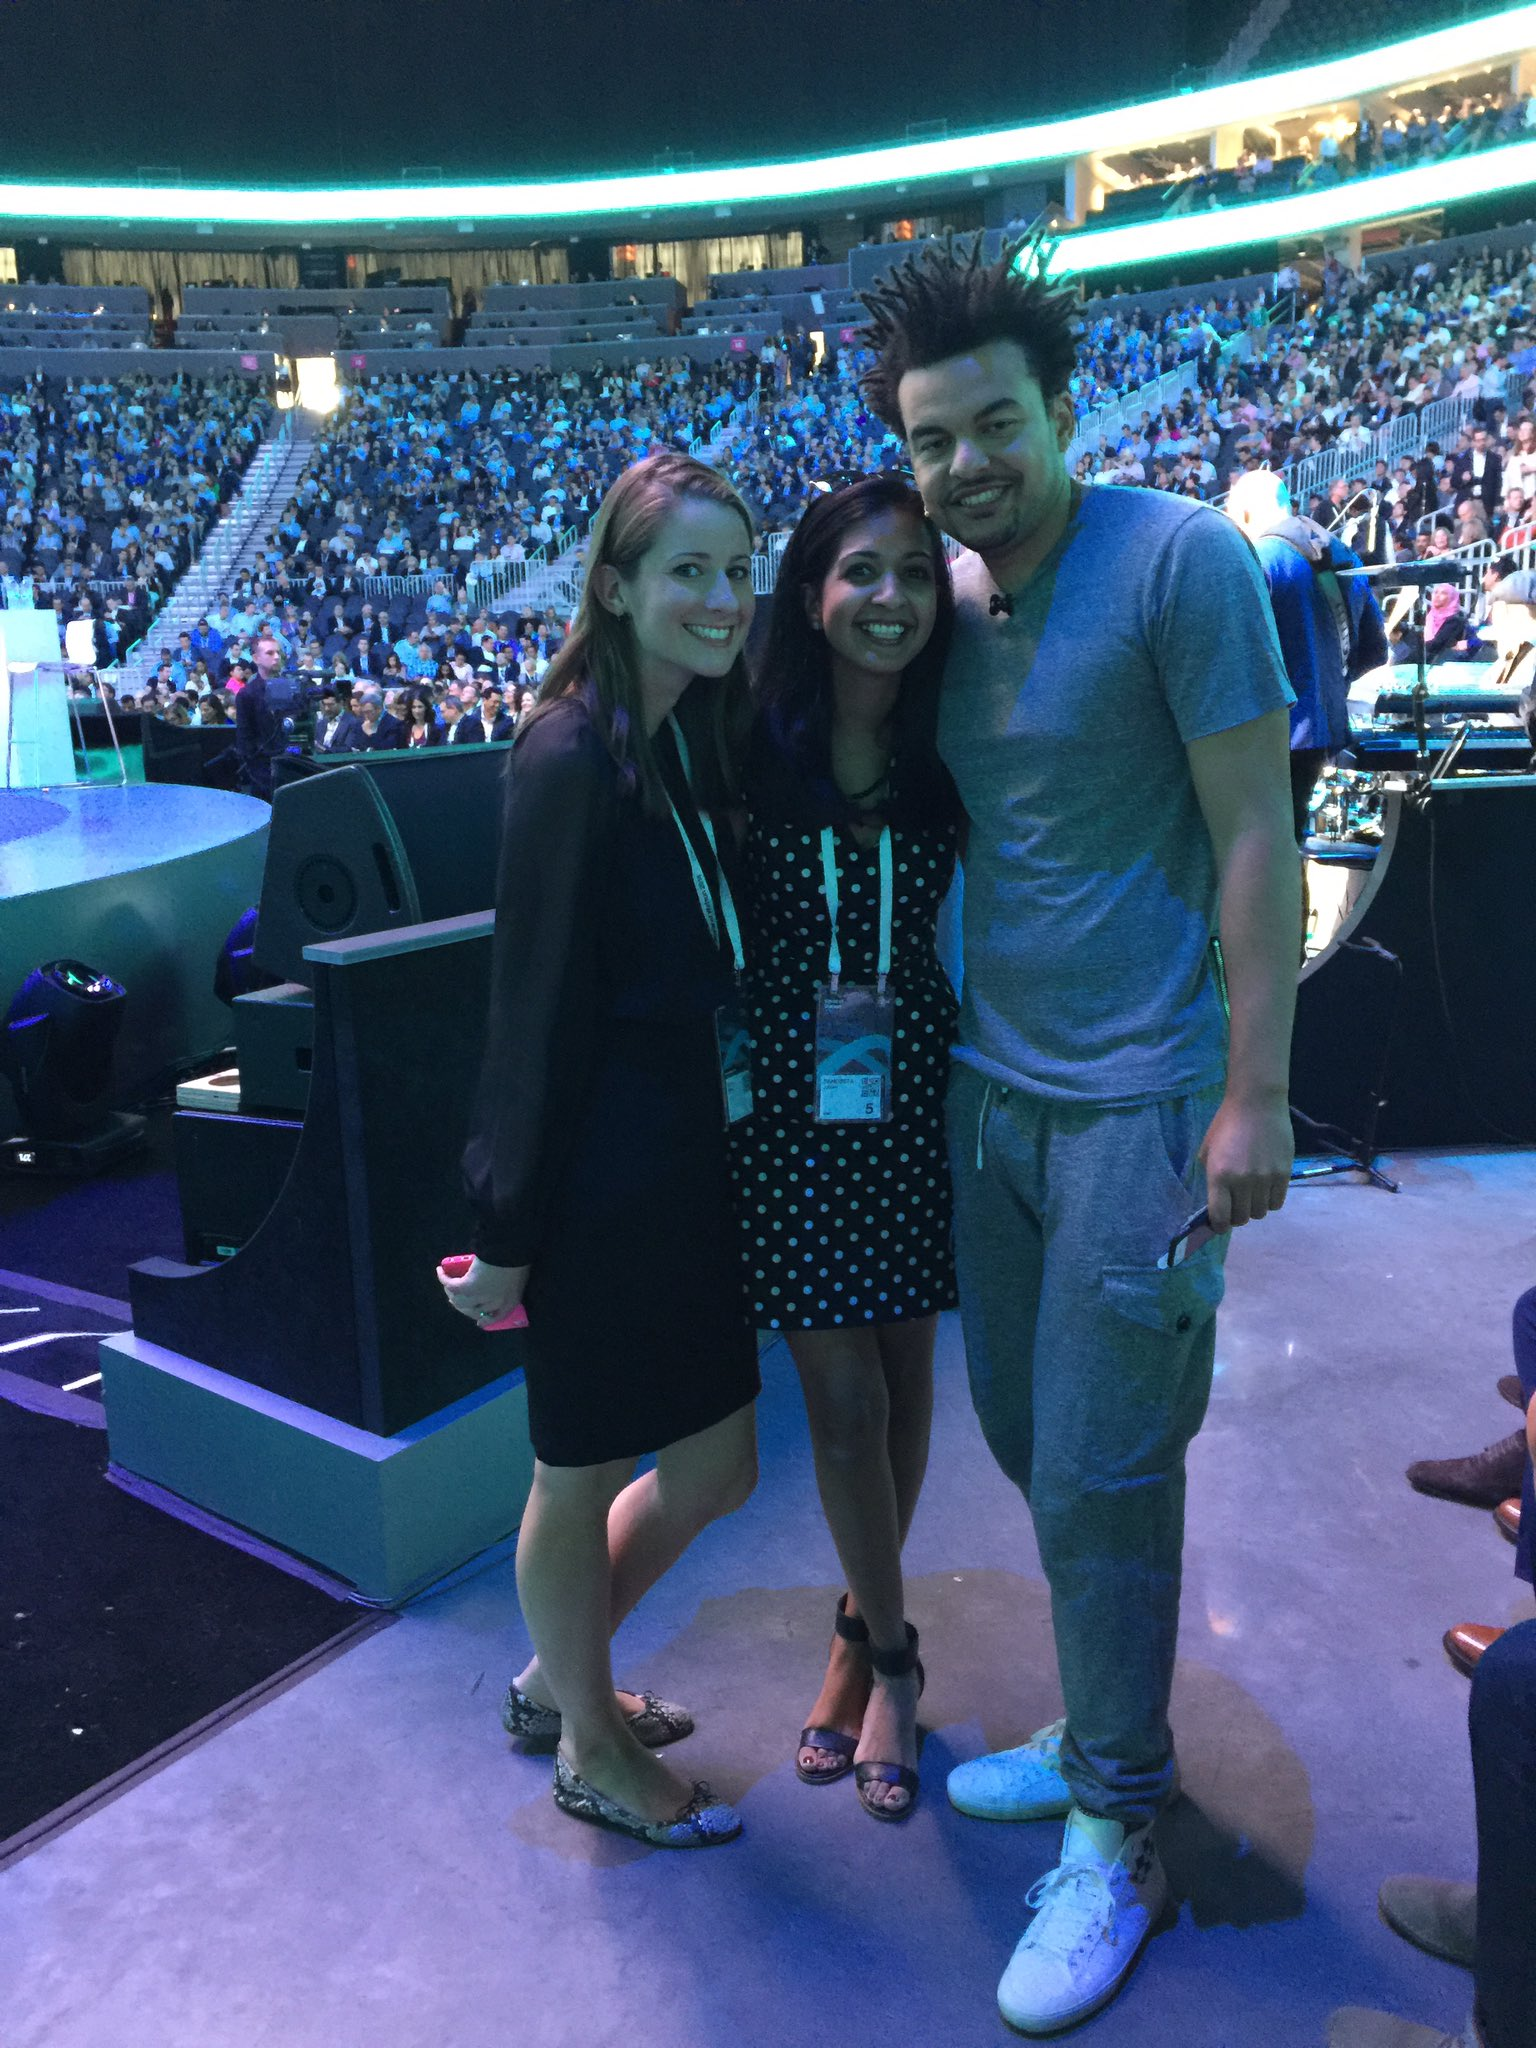 Helping @AlexDaKid prep for his #IBMWOW keynote speech with our rockstar CEO #ginnirometty #ibm #NotEasy #CognitiveMusic https://t.co/qjxMGwvbyp